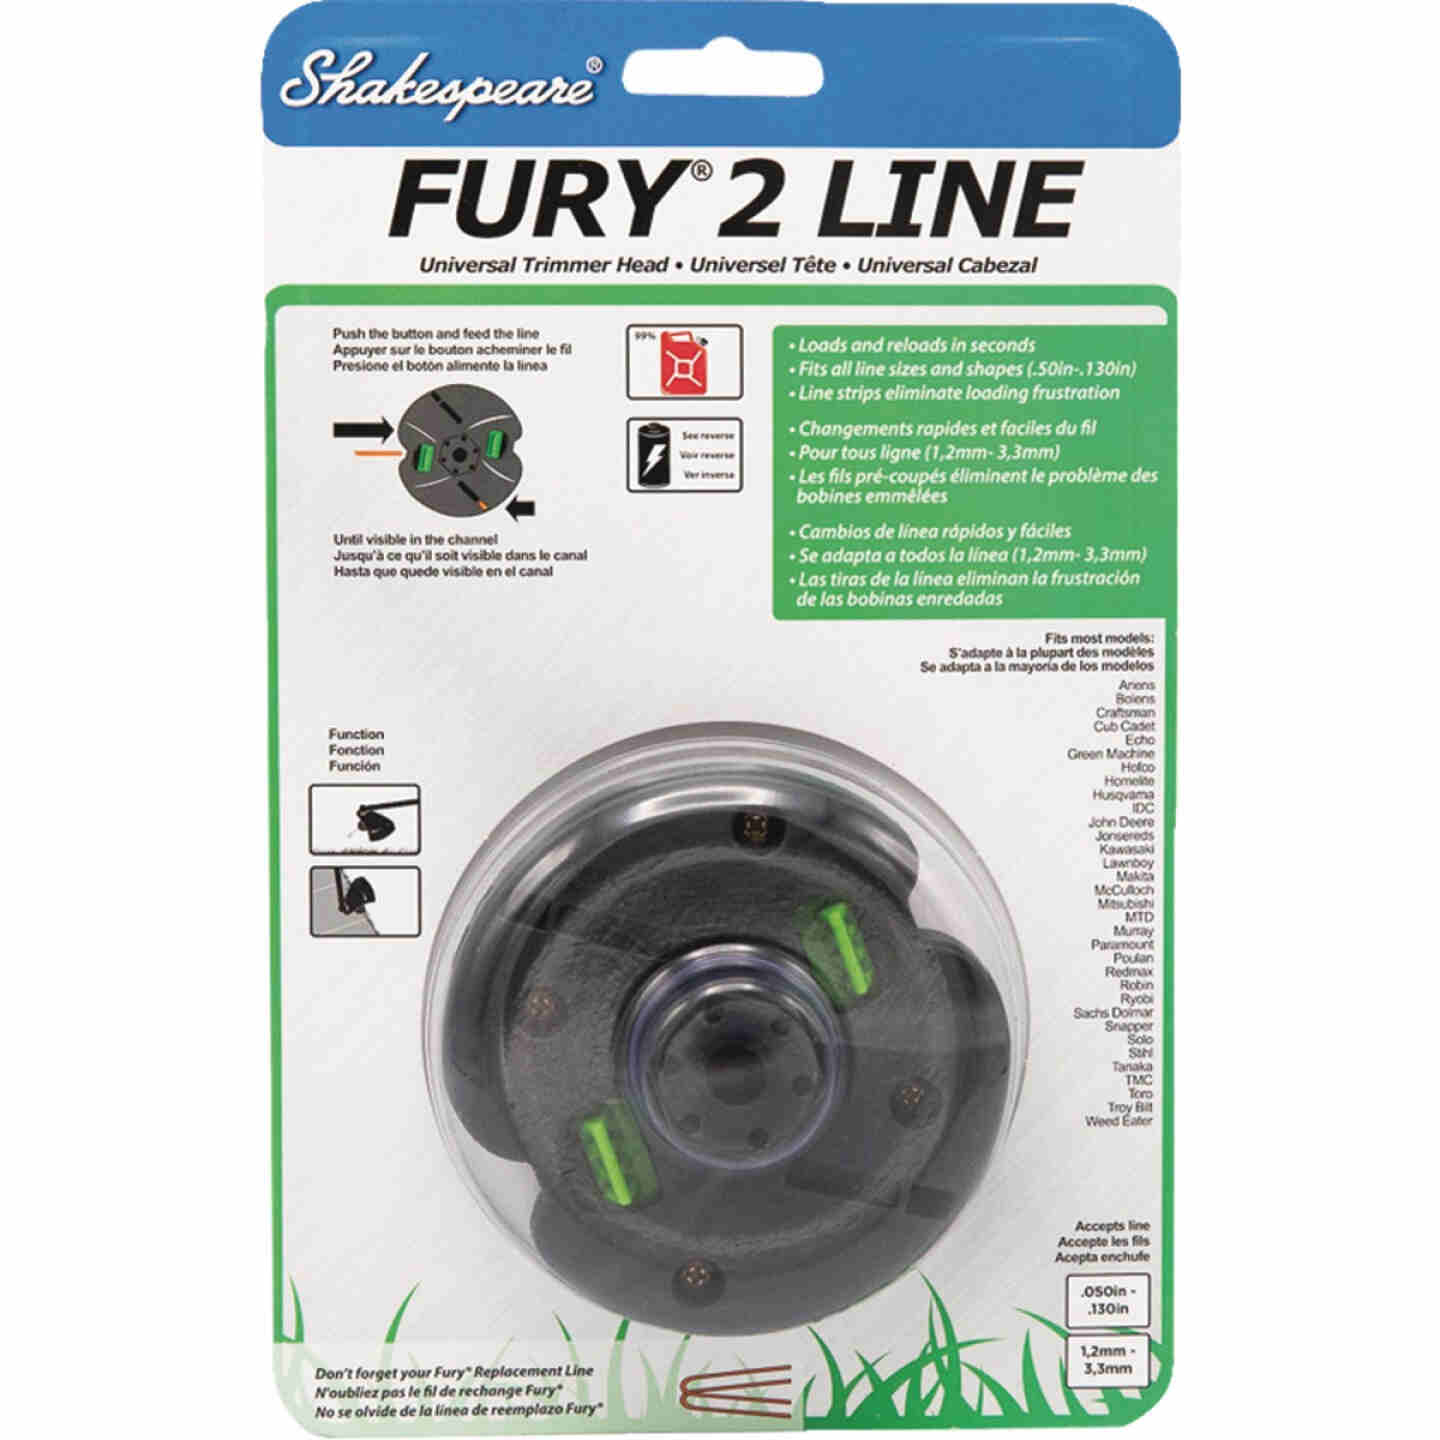 Shakespeare Fury 2 Universal Shaft Replacement Trimmer Head Image 1